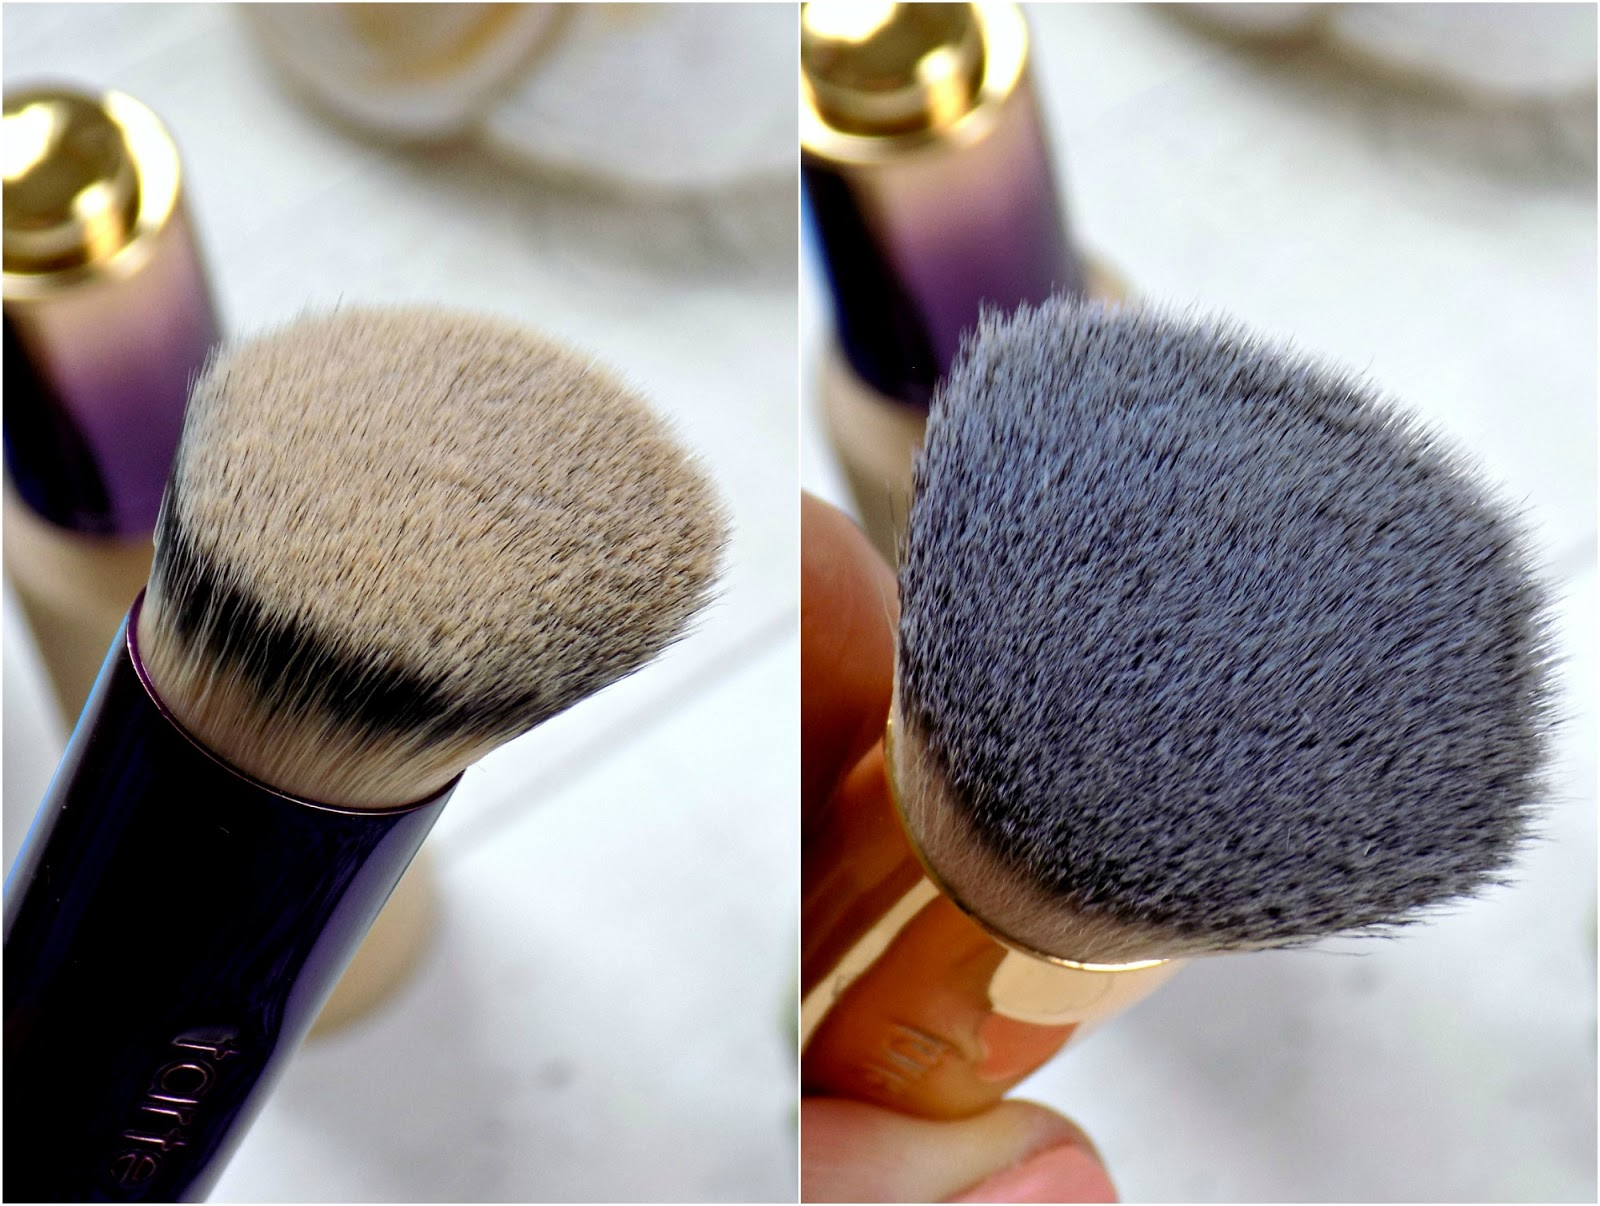 Tarte Rainforest of the Sea Water Foundation Brush